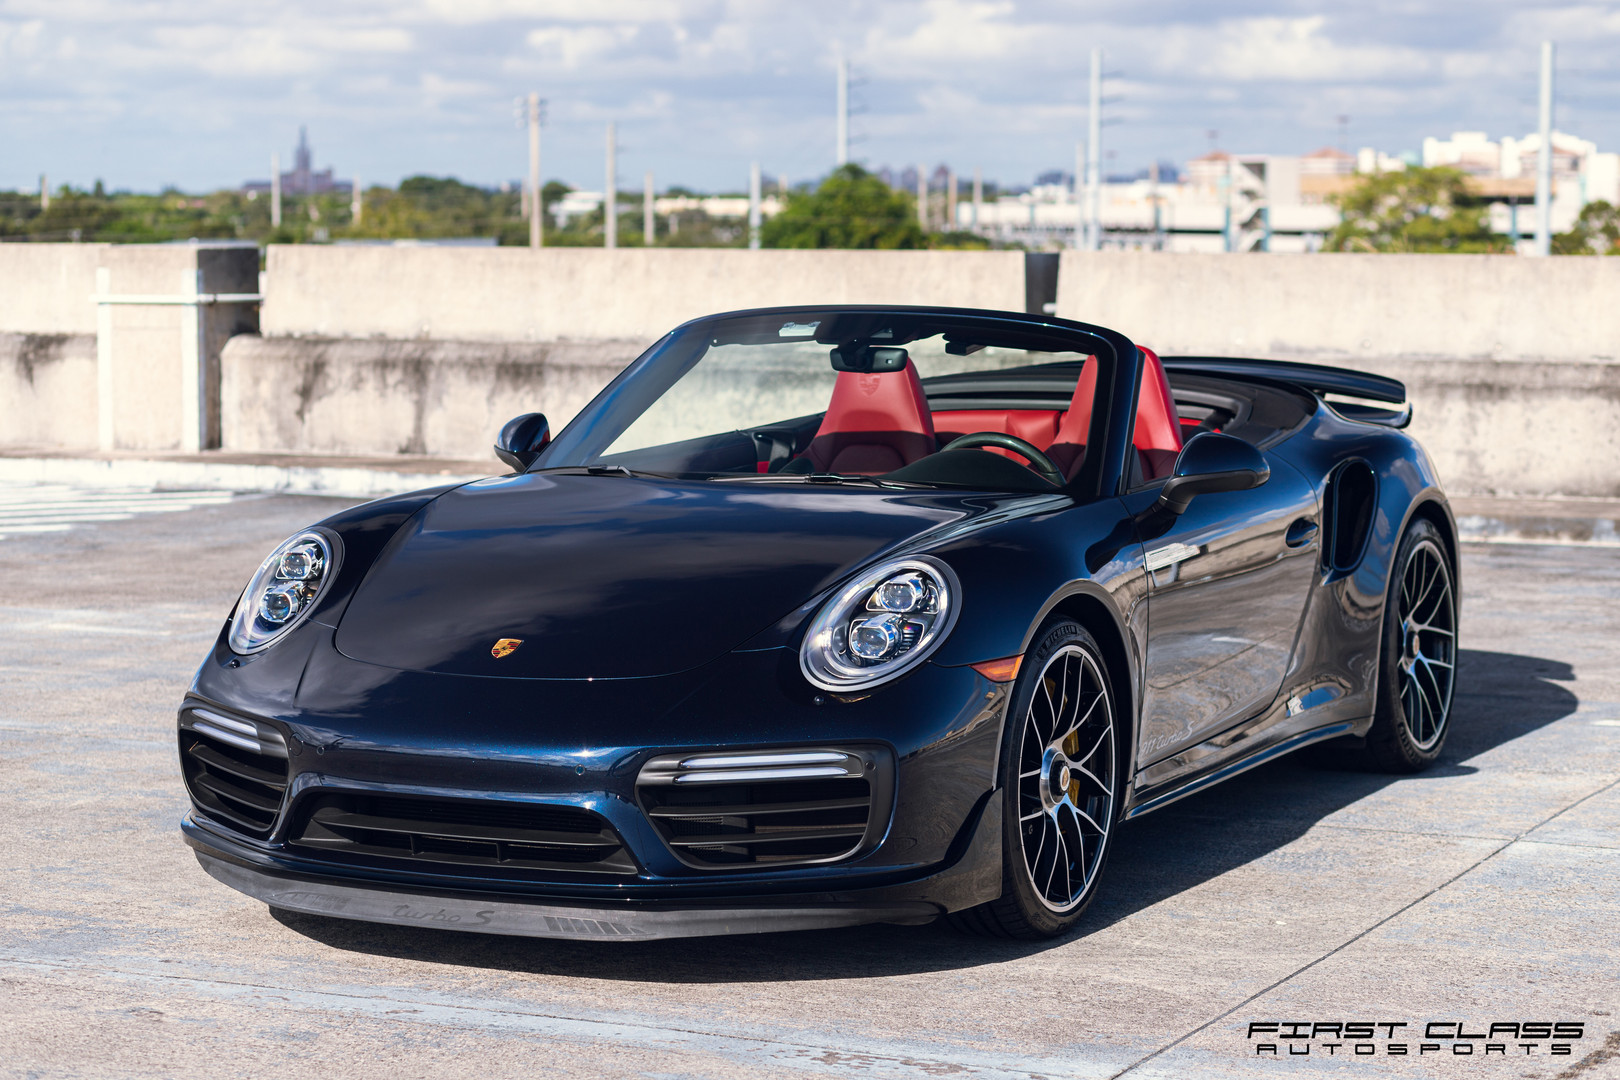 Porsche Turbo S ceramic pro Miami